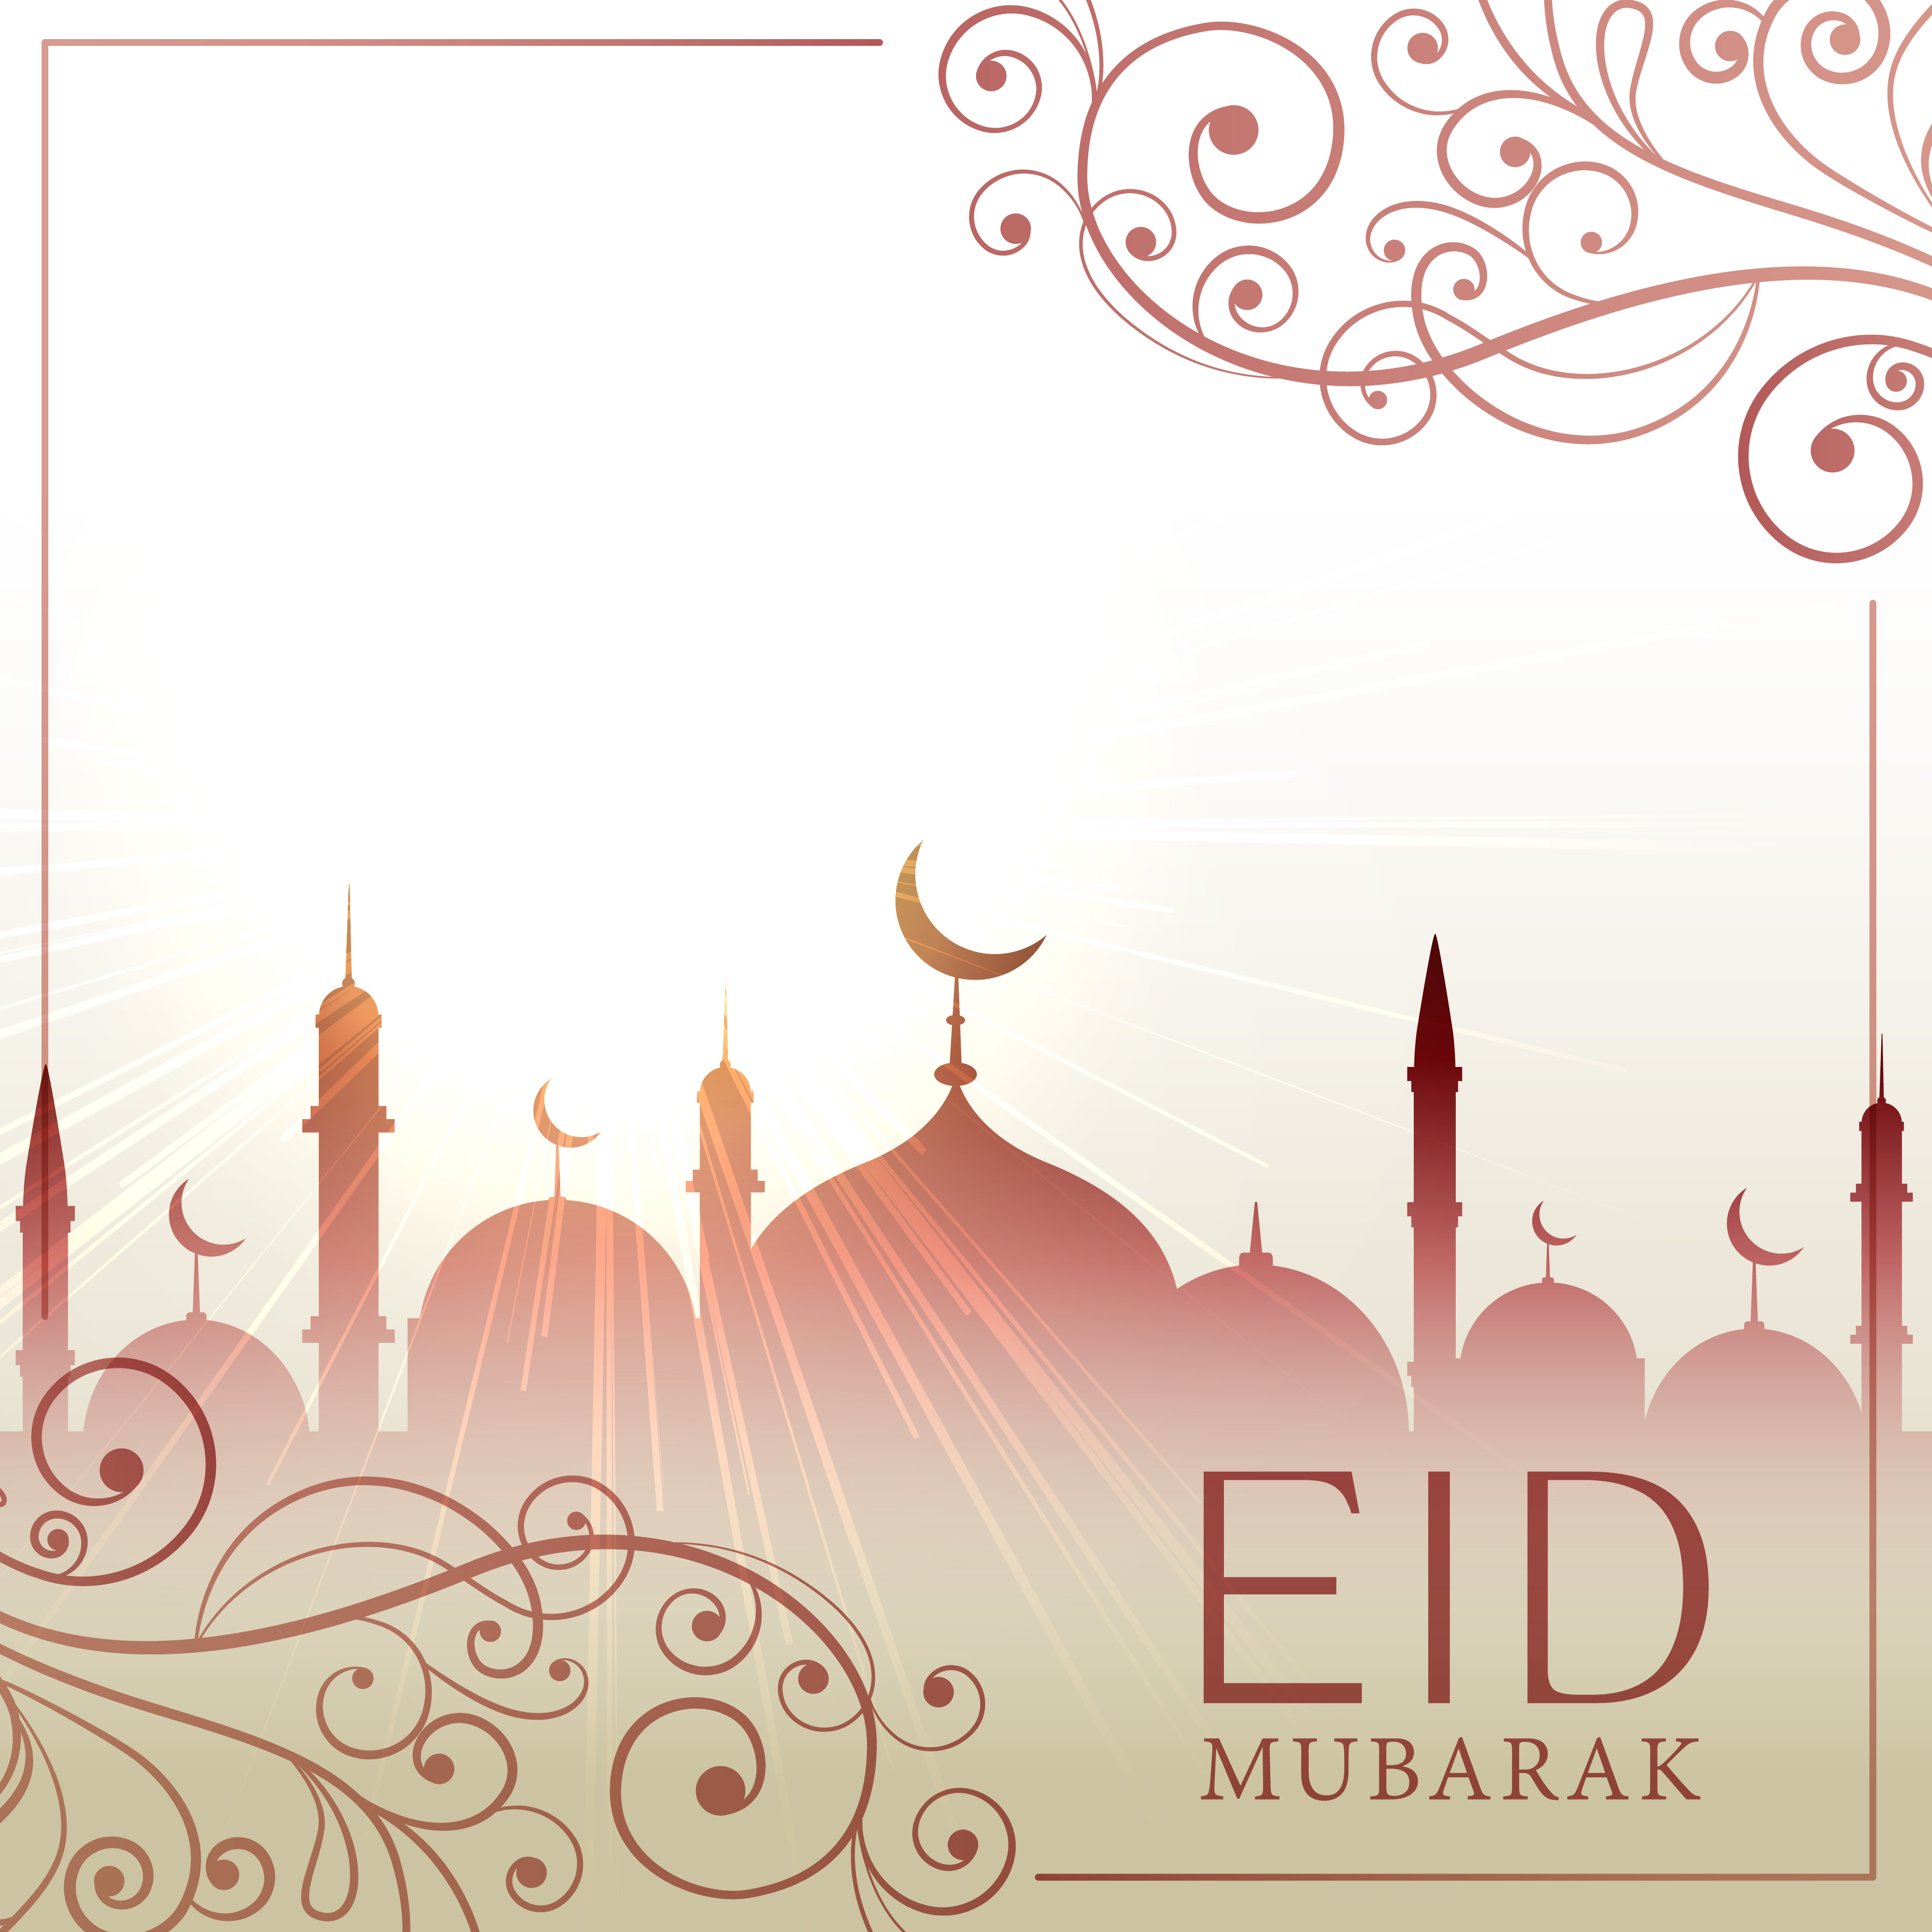 eid festival greeting card besutiful background with ...